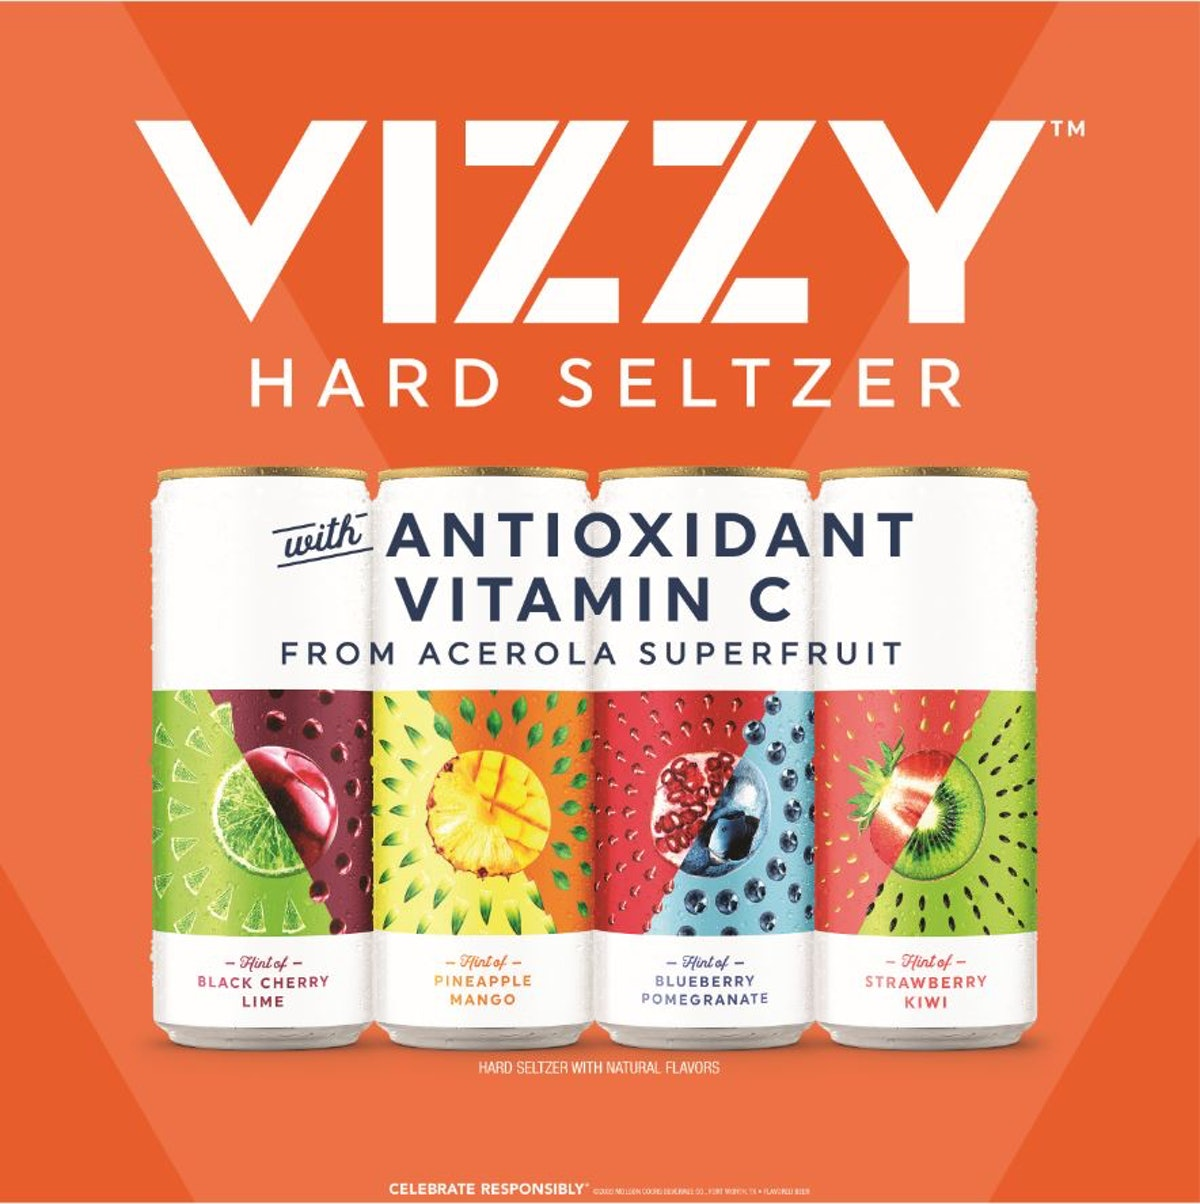 Here's how to win free Vizzy Hard Seltzer during its new sweepstakes.